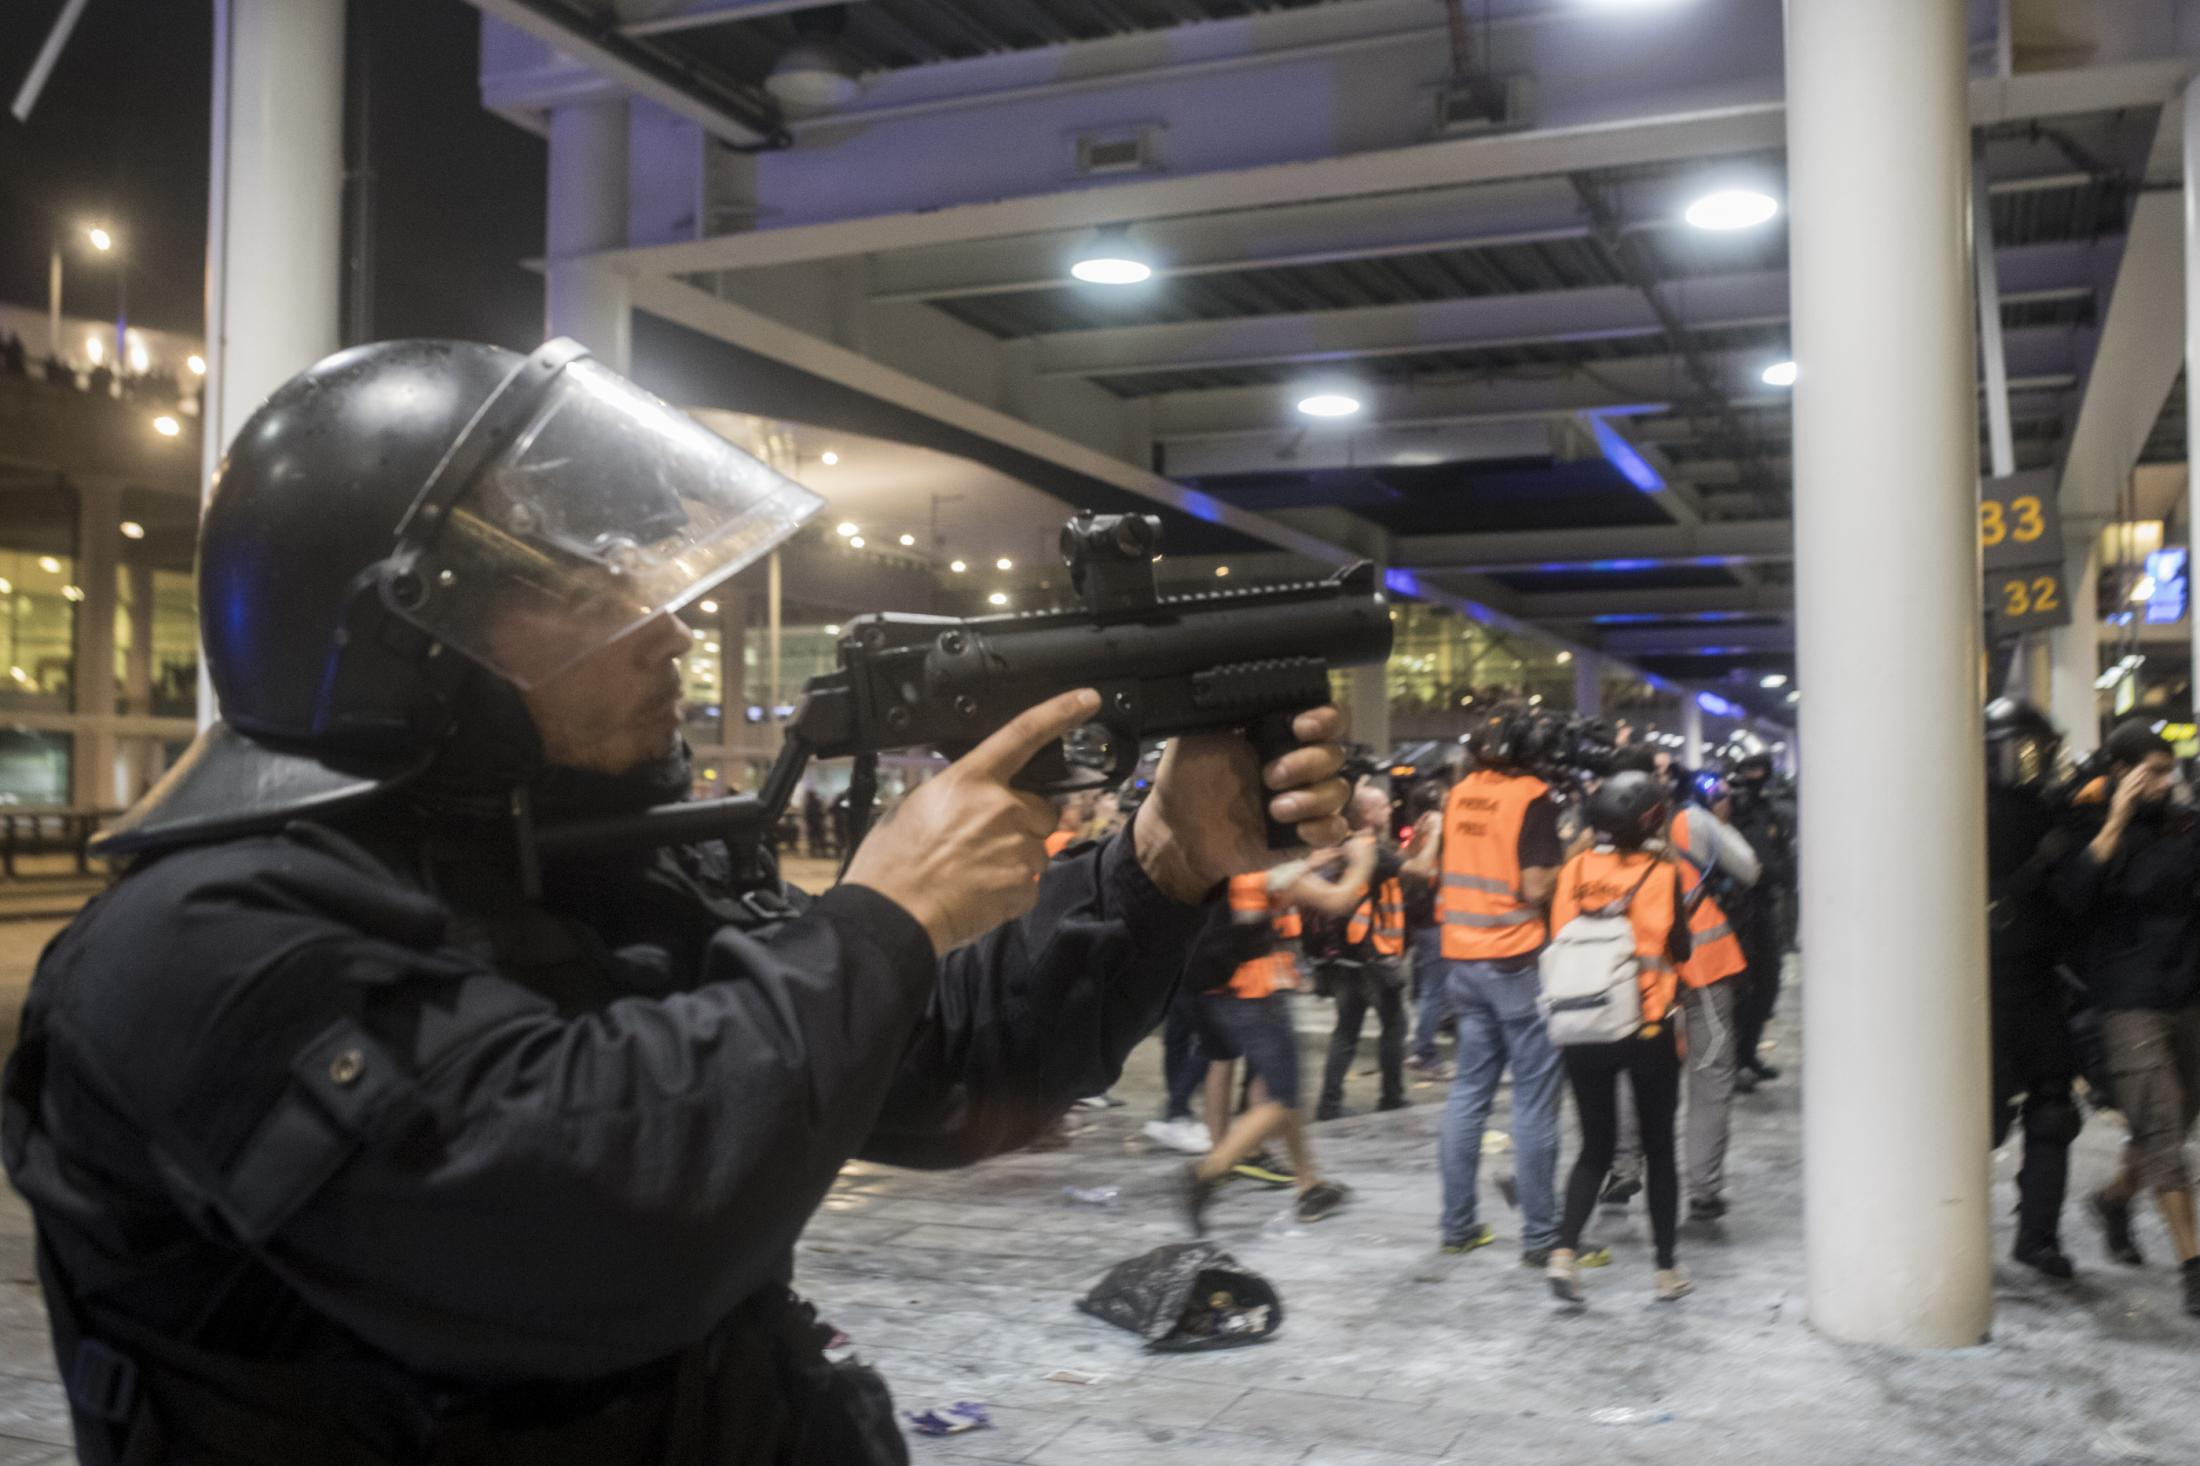 """Riot squads act against protesters at the airport in Barcelona. In 2014 a ban on the use of rubber bullets as an anti-riot weapon was imposed on the Catalan police force following a high profile campaign led by victims who had lost vision. Then Mossos de Esquadra only used """"foam"""" bullet to control the altercations recorded in the Catalan streets, while for National police and Guardia Civile It was still possible to use rubber bullets because of """"a scale of order"""" and the rules that allow using this riot gear """"are above"""" what is established in the Catalan law. October 2019, Barcelona, Spain."""